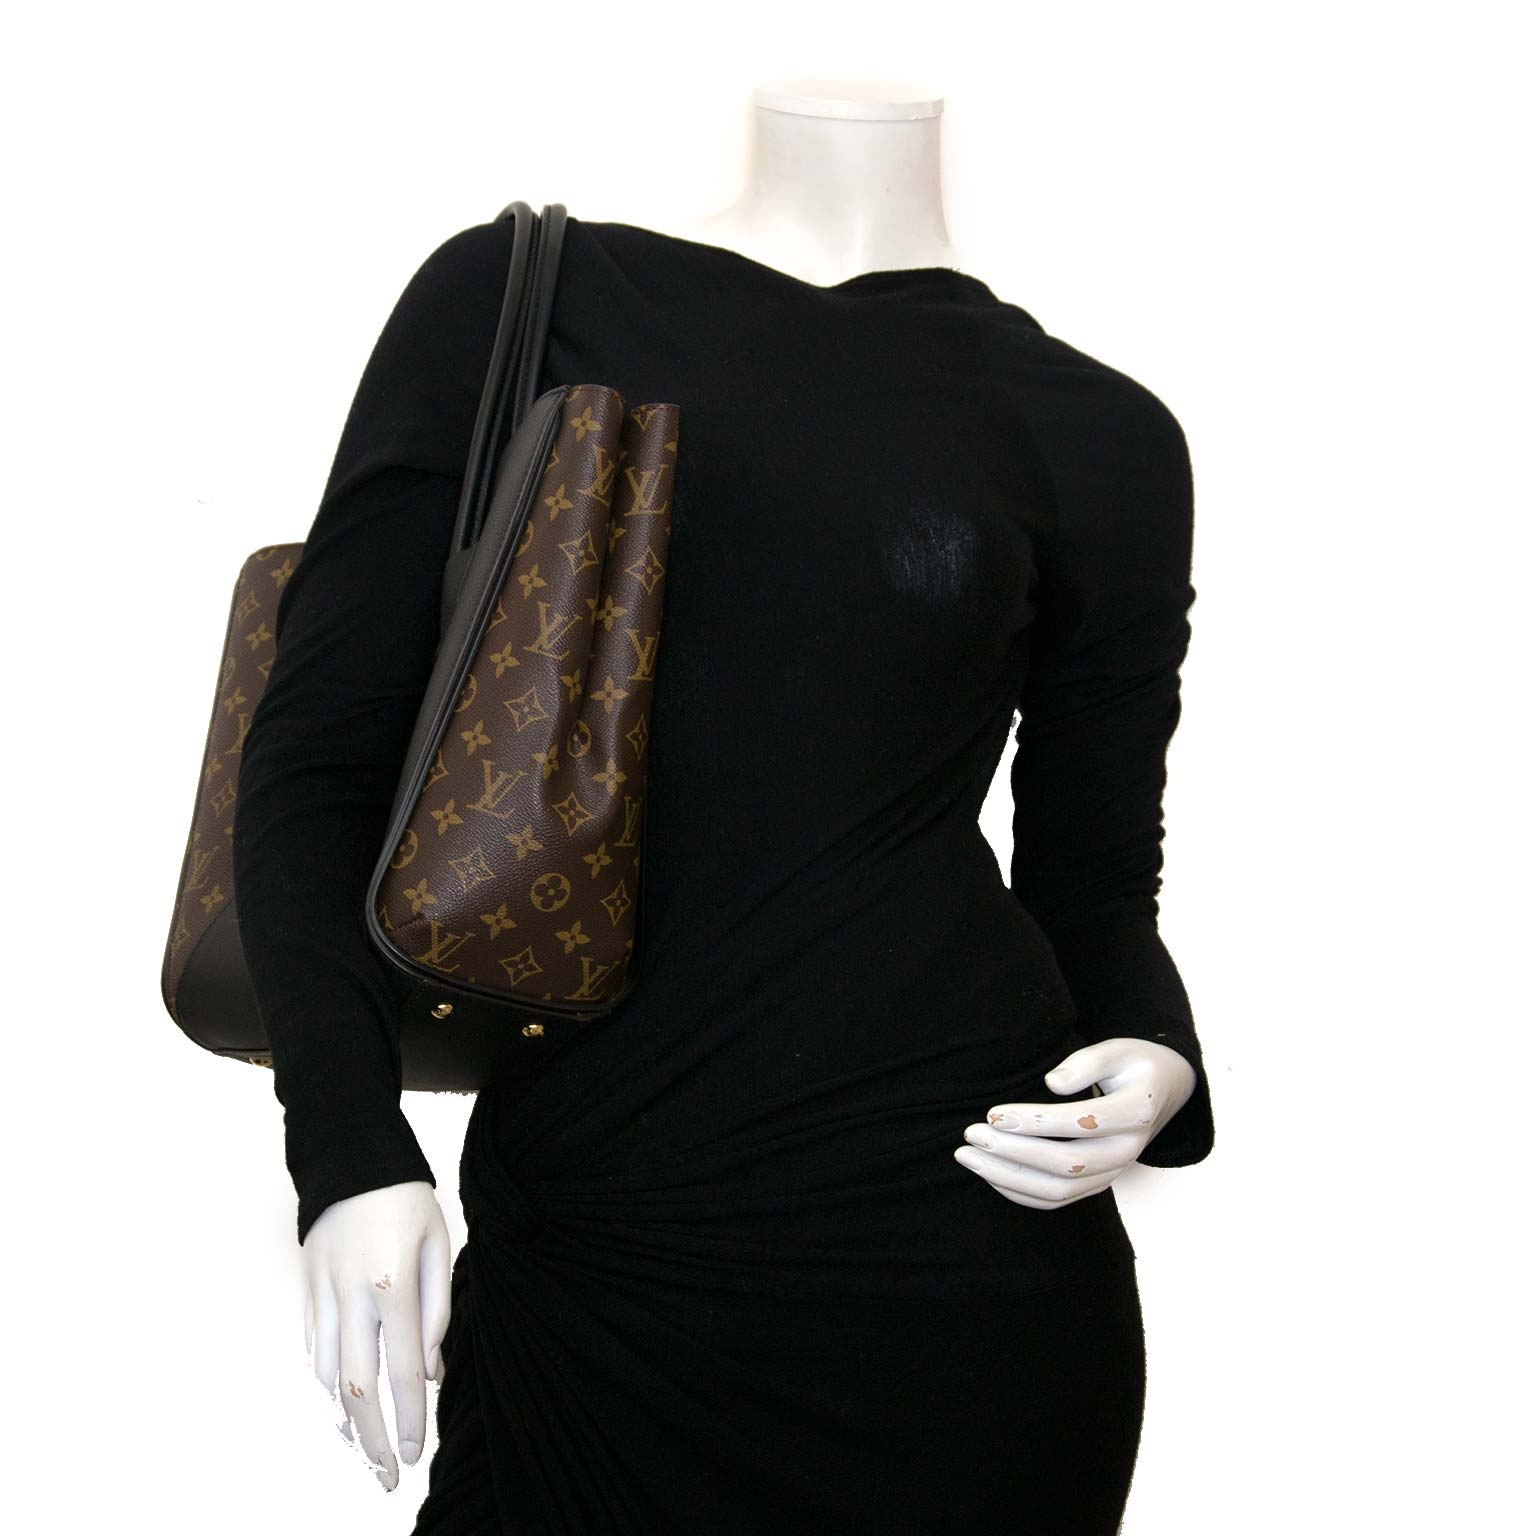 louis vuitton kimono monogram brown & black tote now for sale at labellov vintage fashion webshop belgium